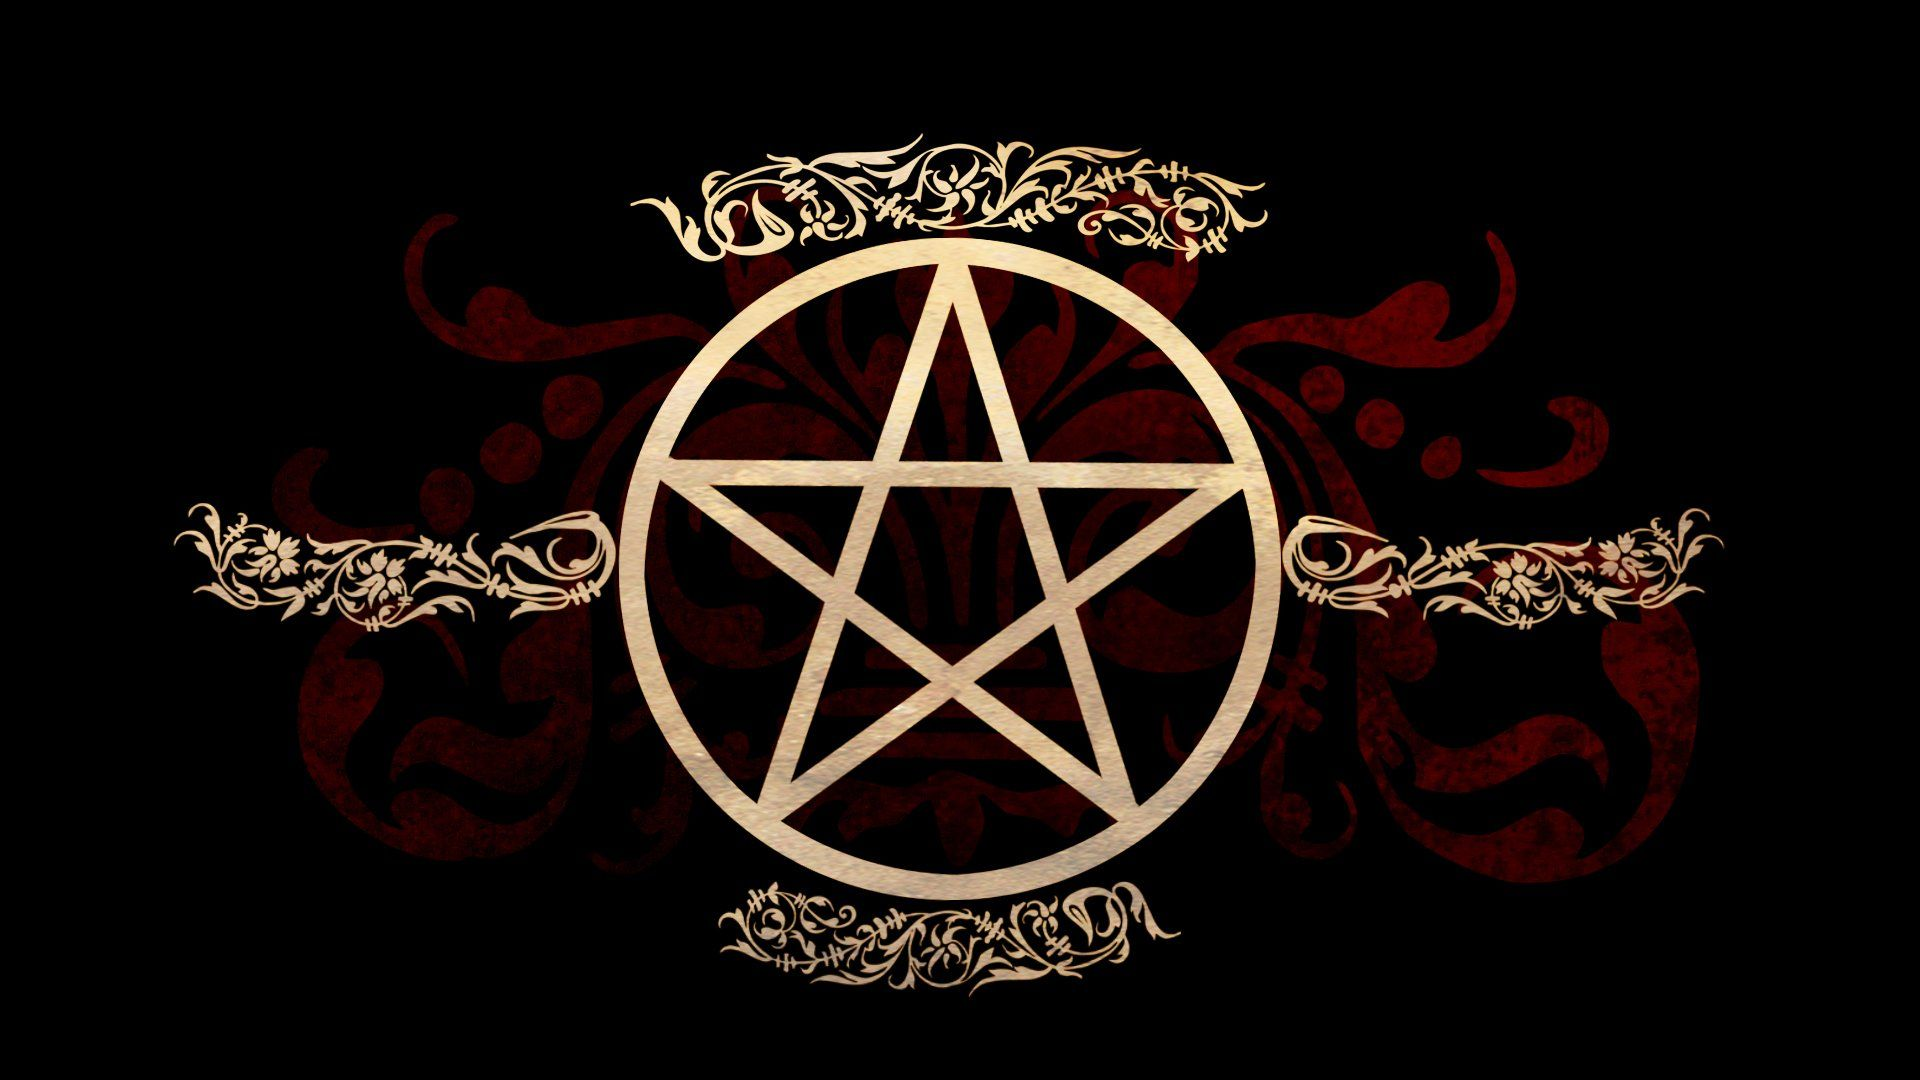 Wicca Wallpaper For Computer Wiccan Wallpaper Pagan Art Wiccan